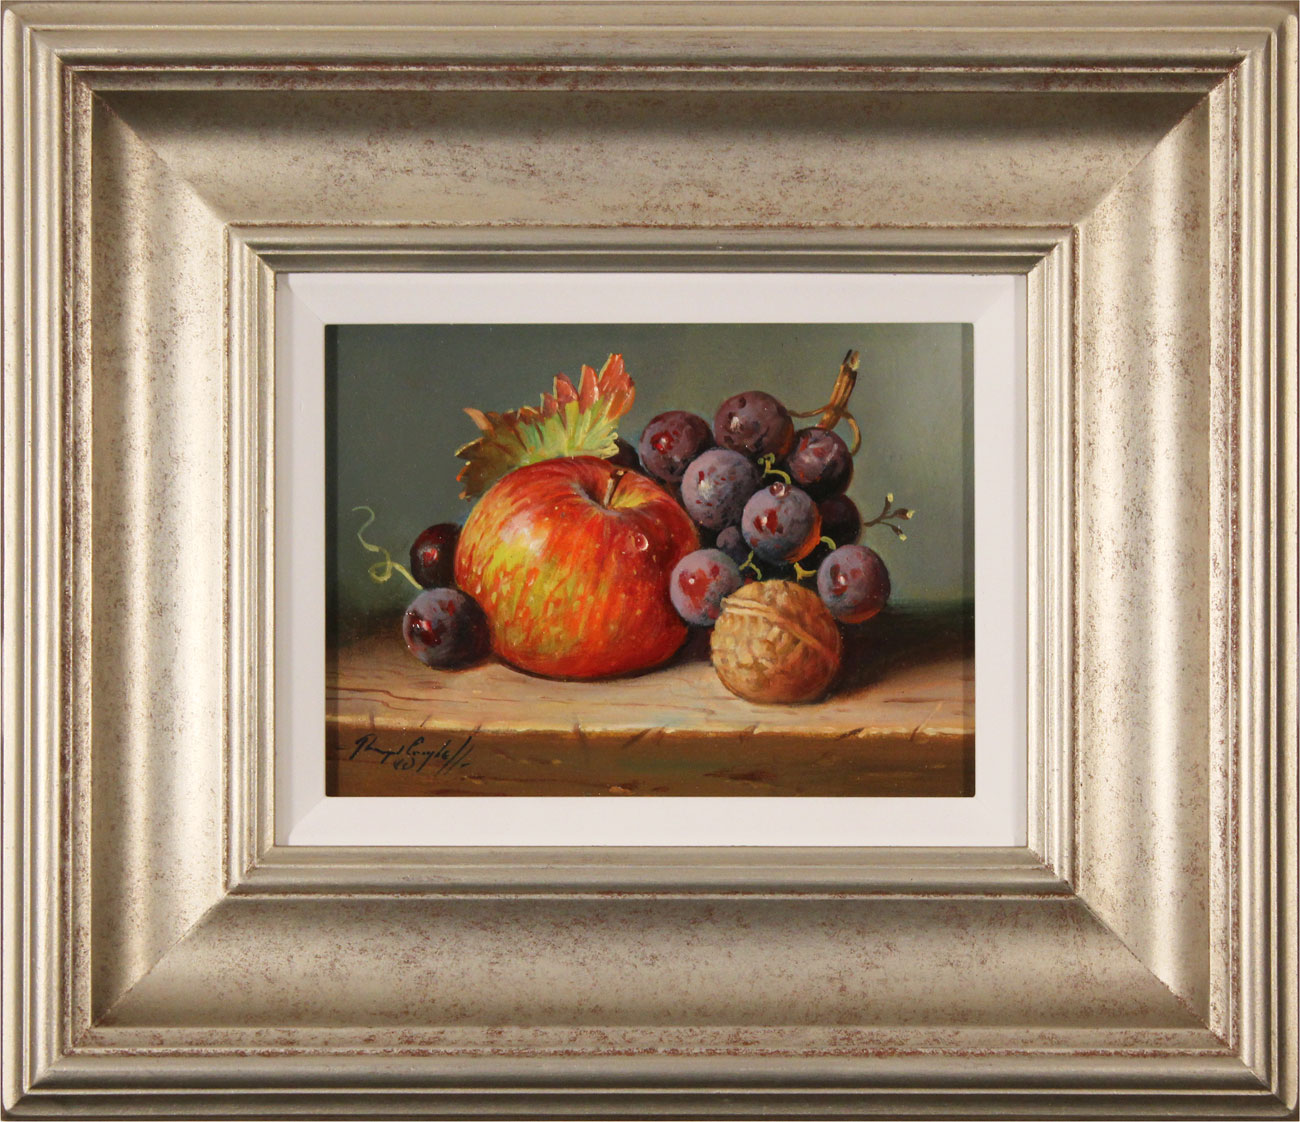 Raymond Campbell, Original oil painting on panel, Apple, Walnut and Grapes Click to enlarge